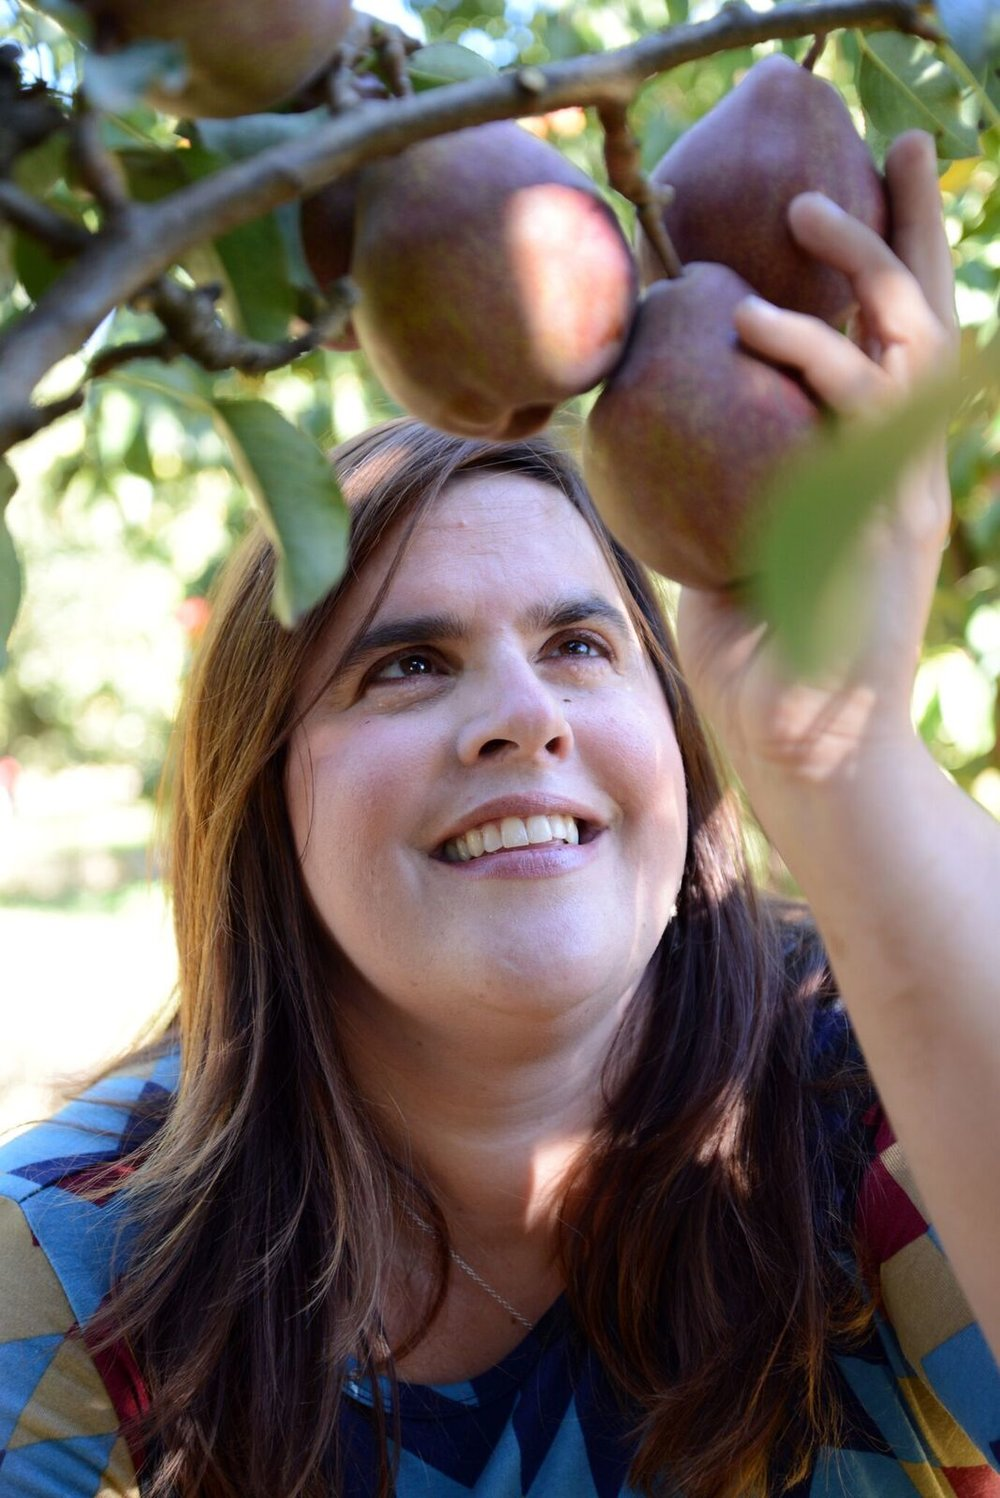 Harvesting pears: Photo by Ben Mitchell/Hood River News